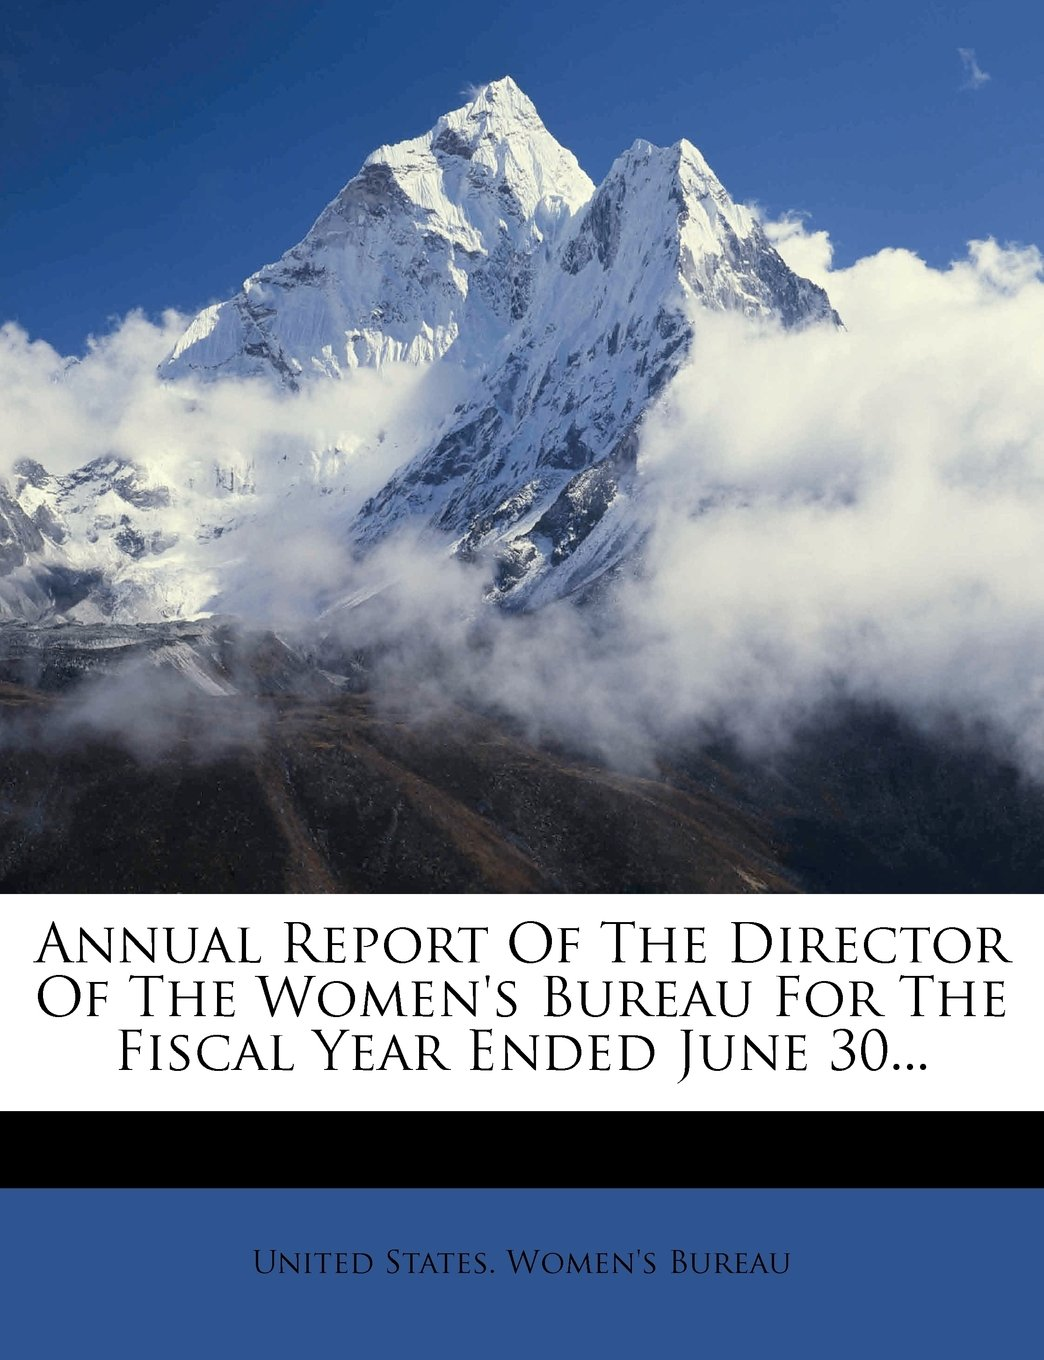 Download Annual Report Of The Director Of The Women's Bureau For The Fiscal Year Ended June 30... pdf